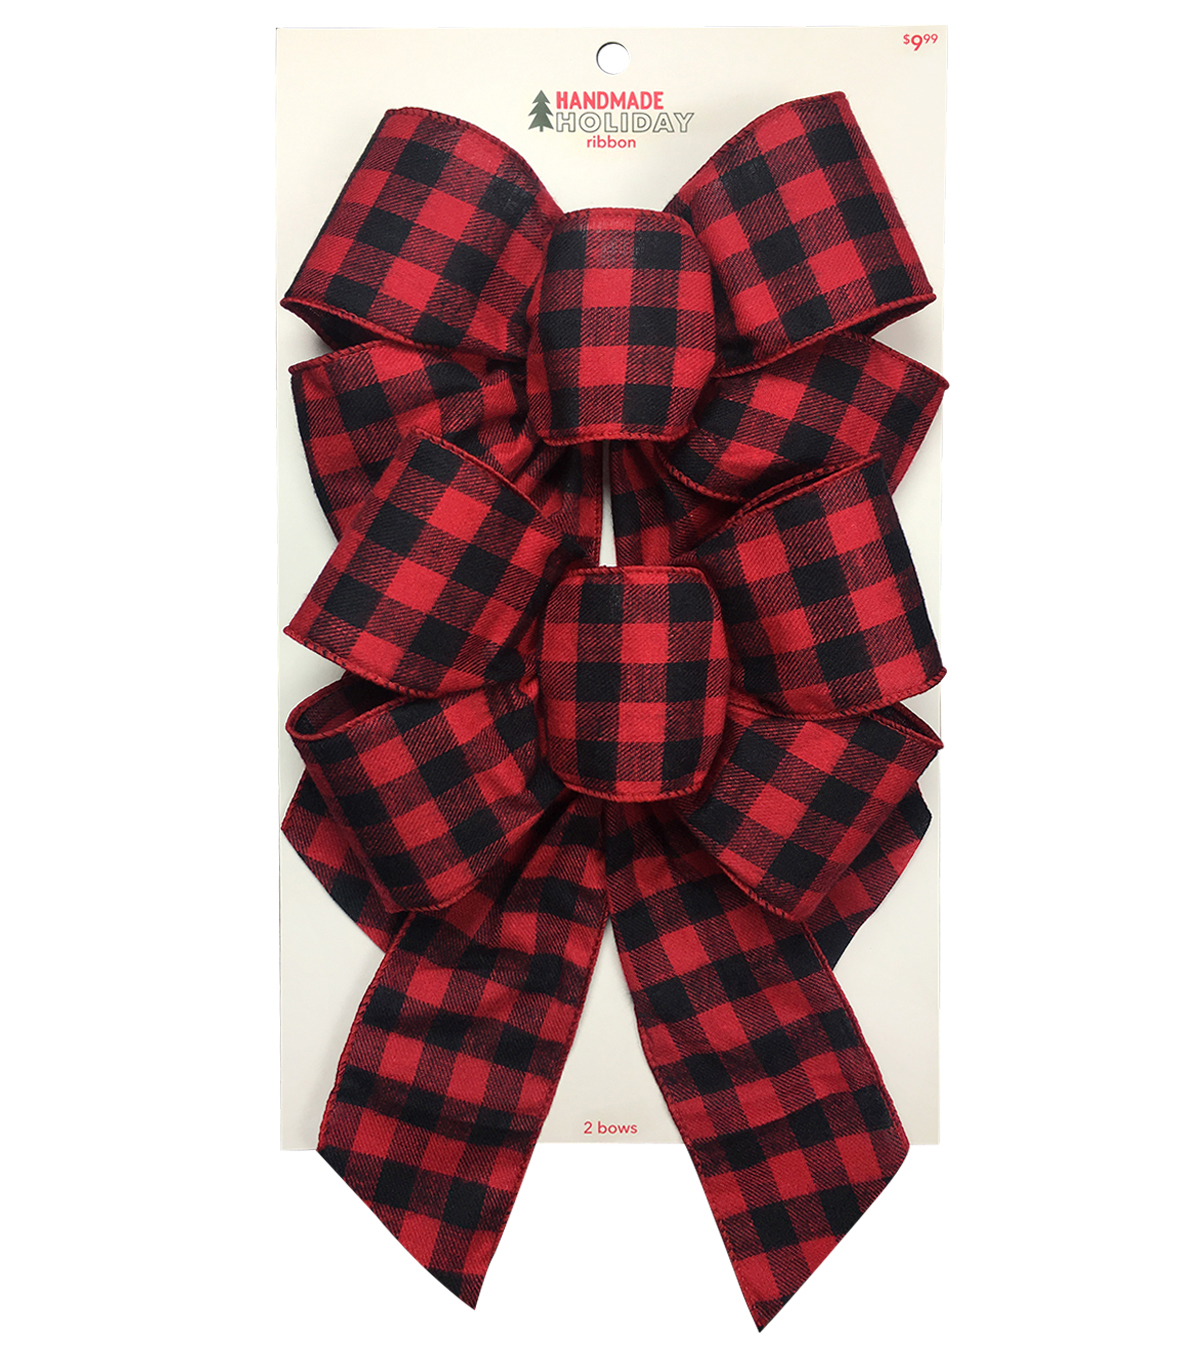 Handmade Holiday Christmas 2 pk Bows-Red & Black Checks